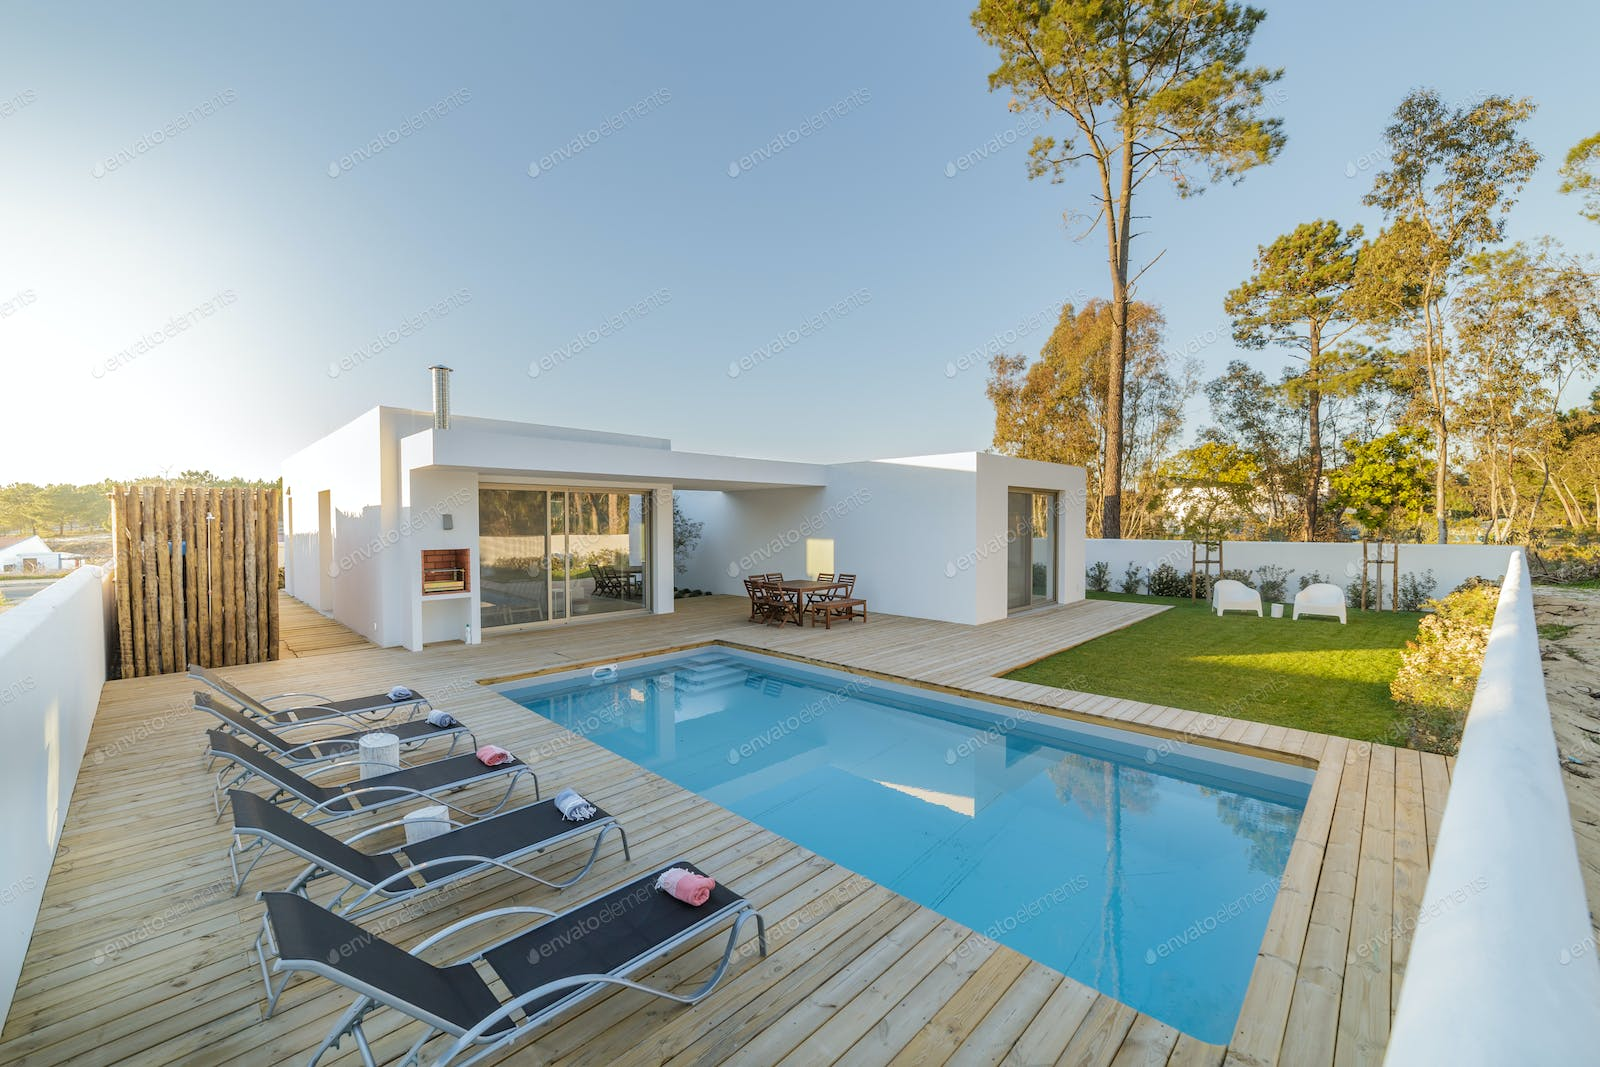 Garden With Swimming Pool modern house with garden swimming pool and wooden deck photo by luisviegas  on envato elements